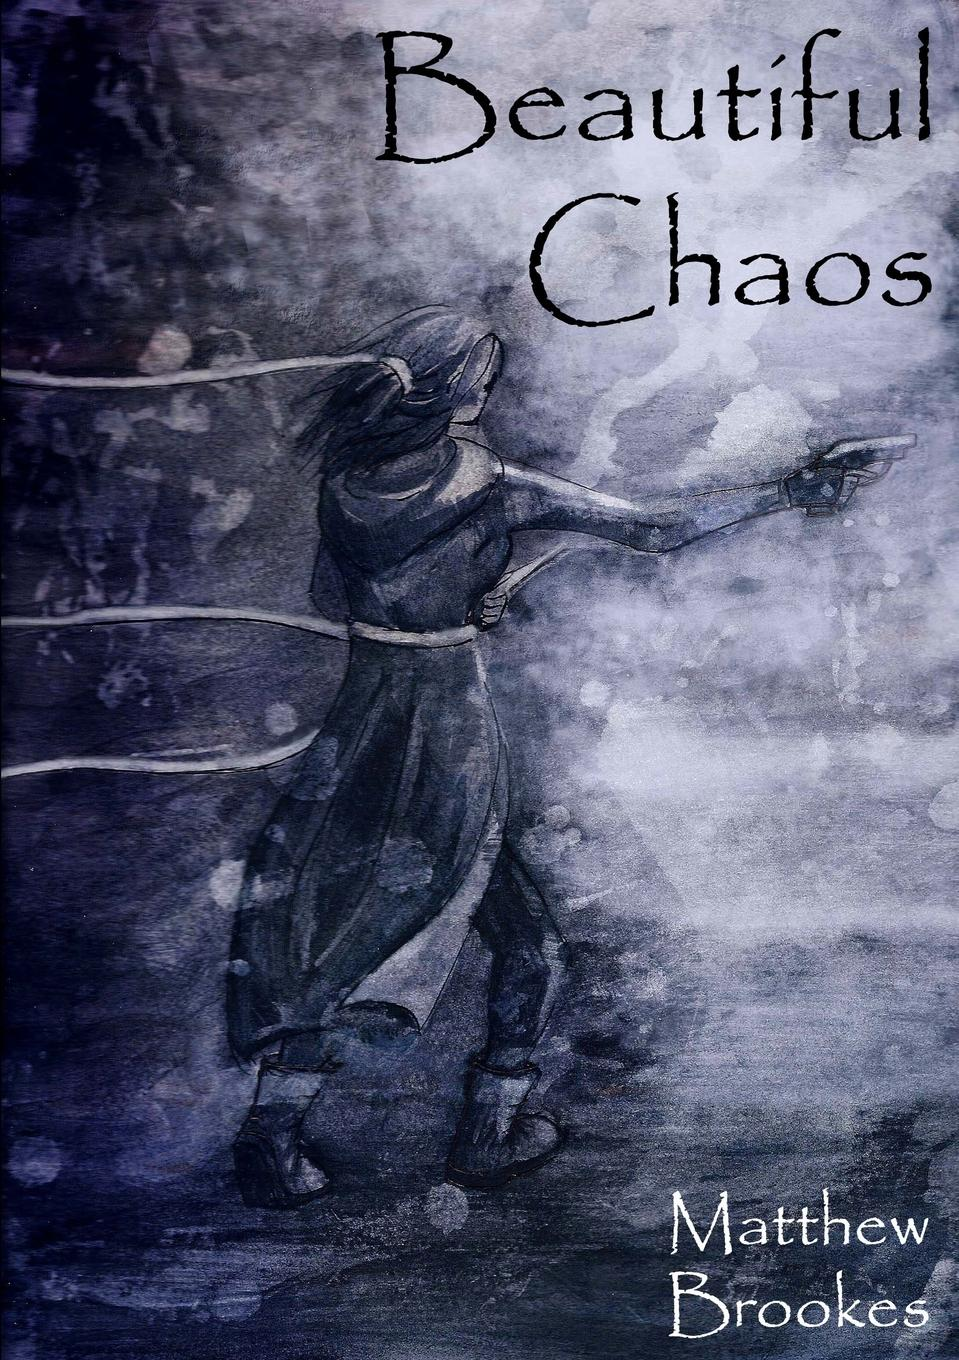 Matthew Brookes Beautiful Chaos chaos панама chaos stratus sombrero